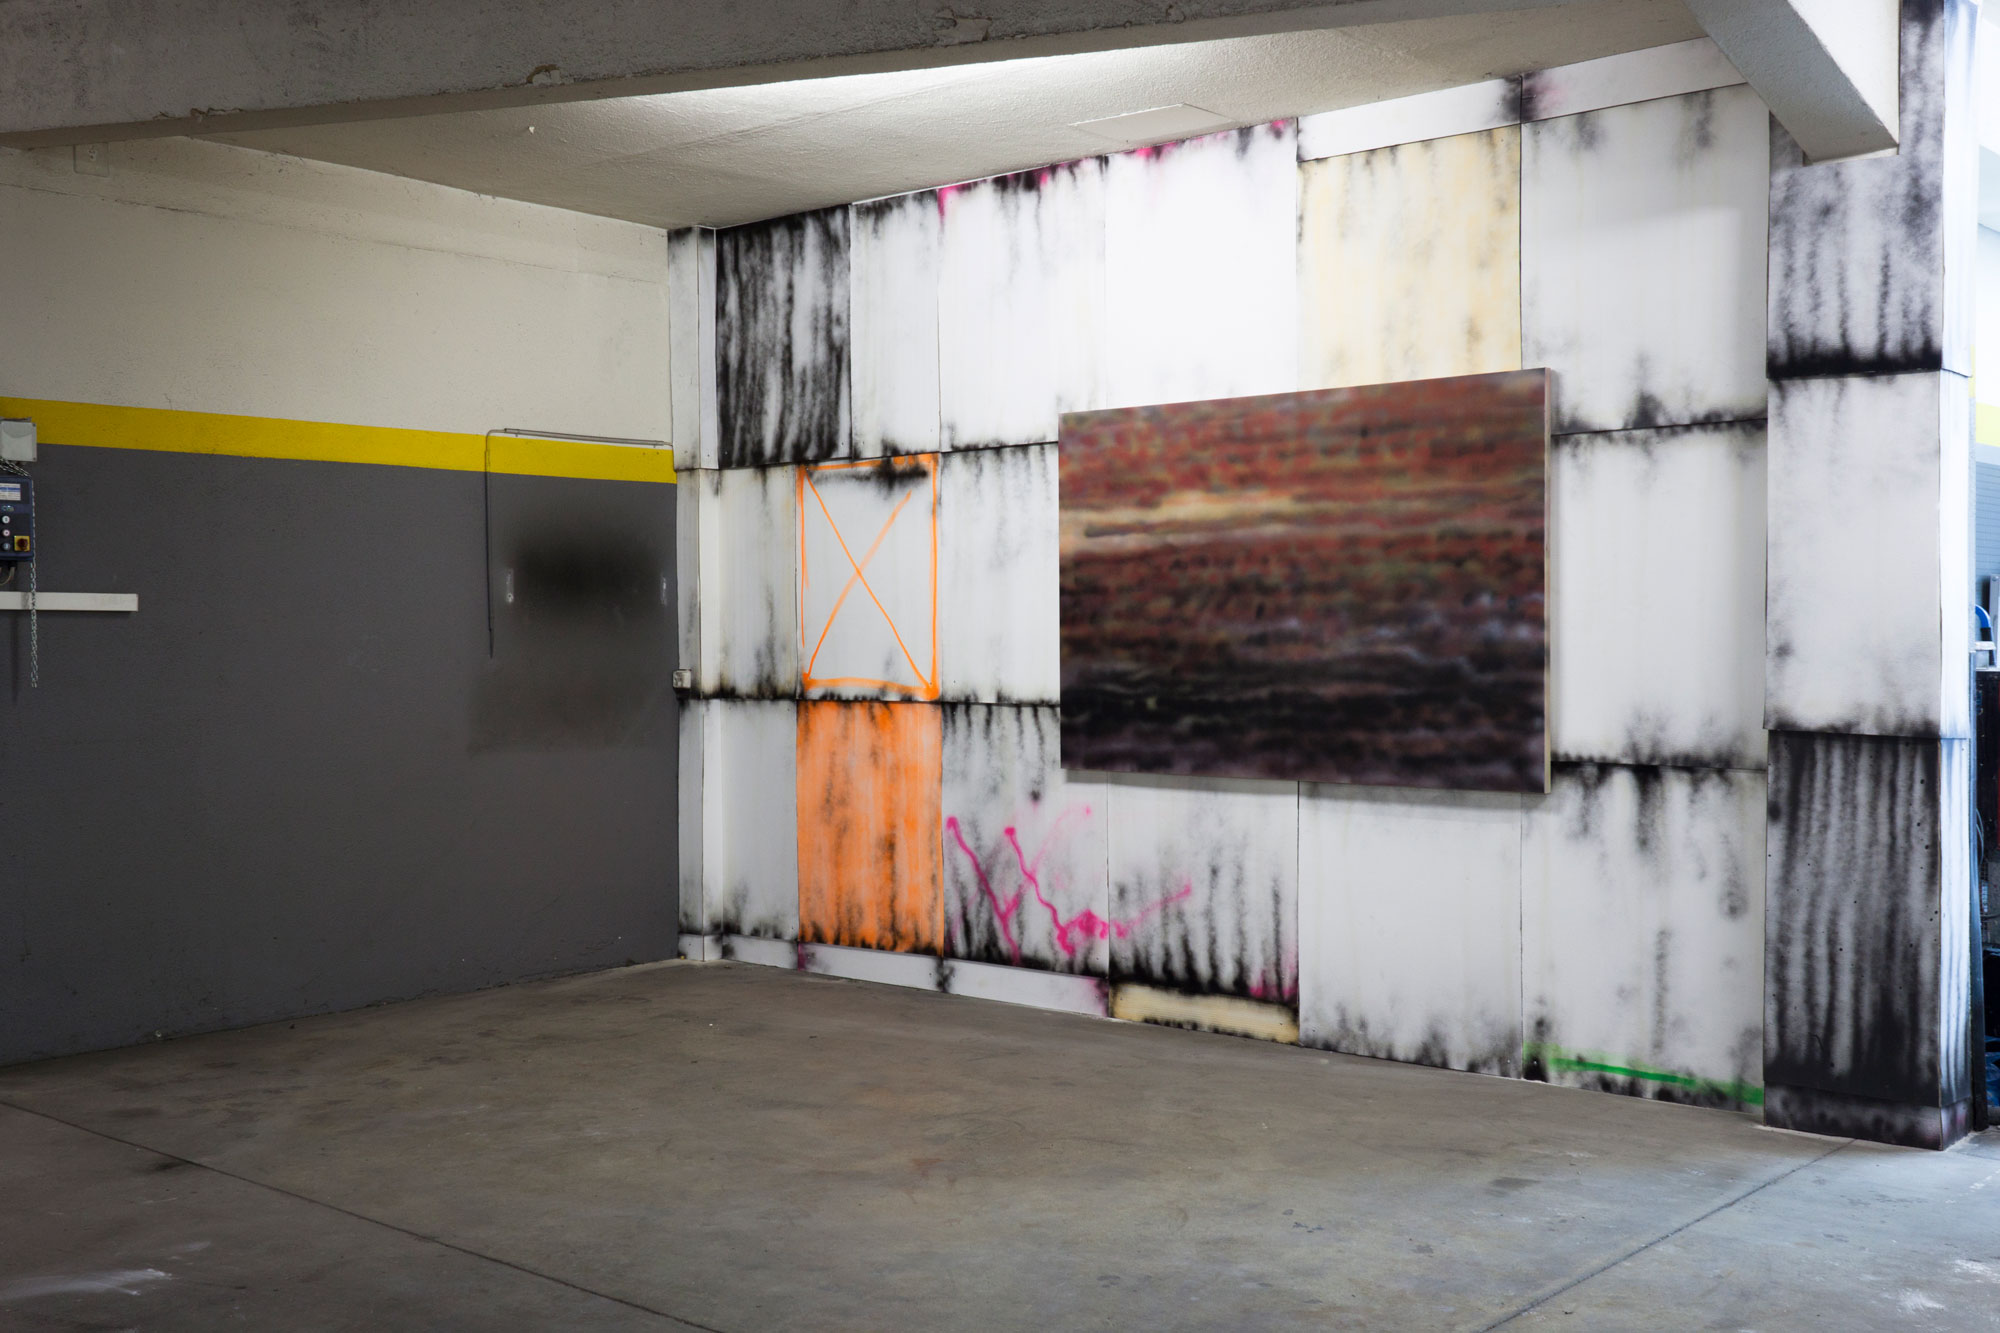 Installation view, Drive the Change, 100plus, Zürich, March 20 - 24., 2014